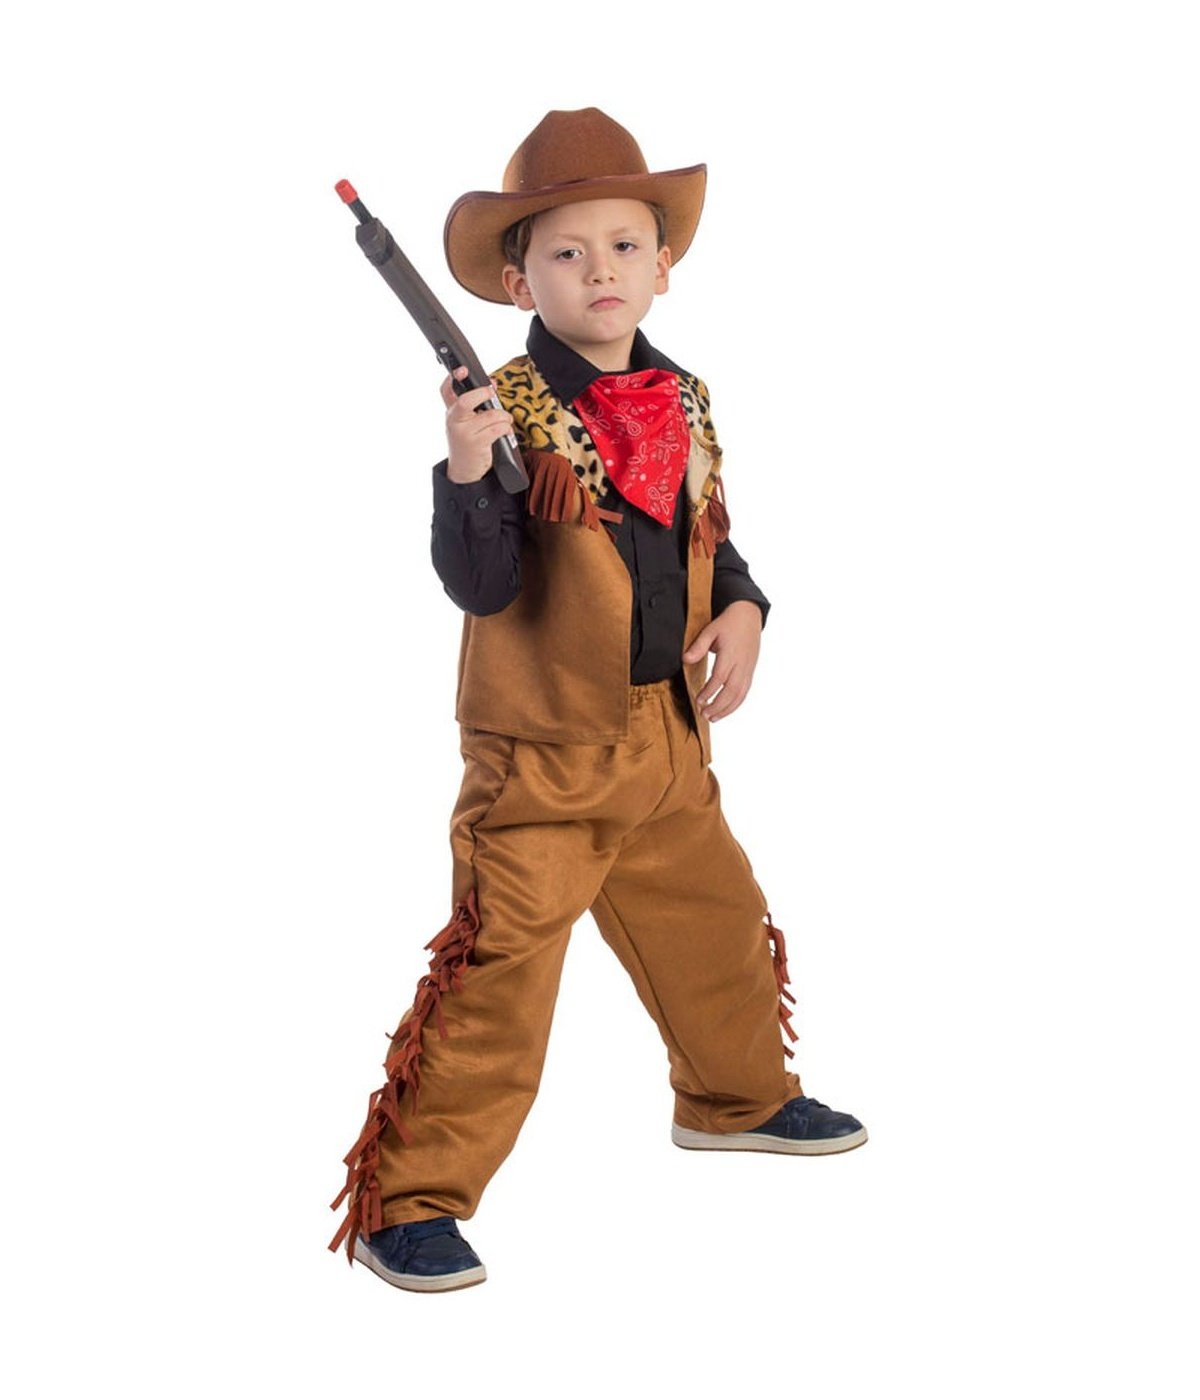 Boys Wild Western Cow Costume  sc 1 st  Wonder Costumes & Cowboy Costume - Western Outfit u0026 Halloween Costumes